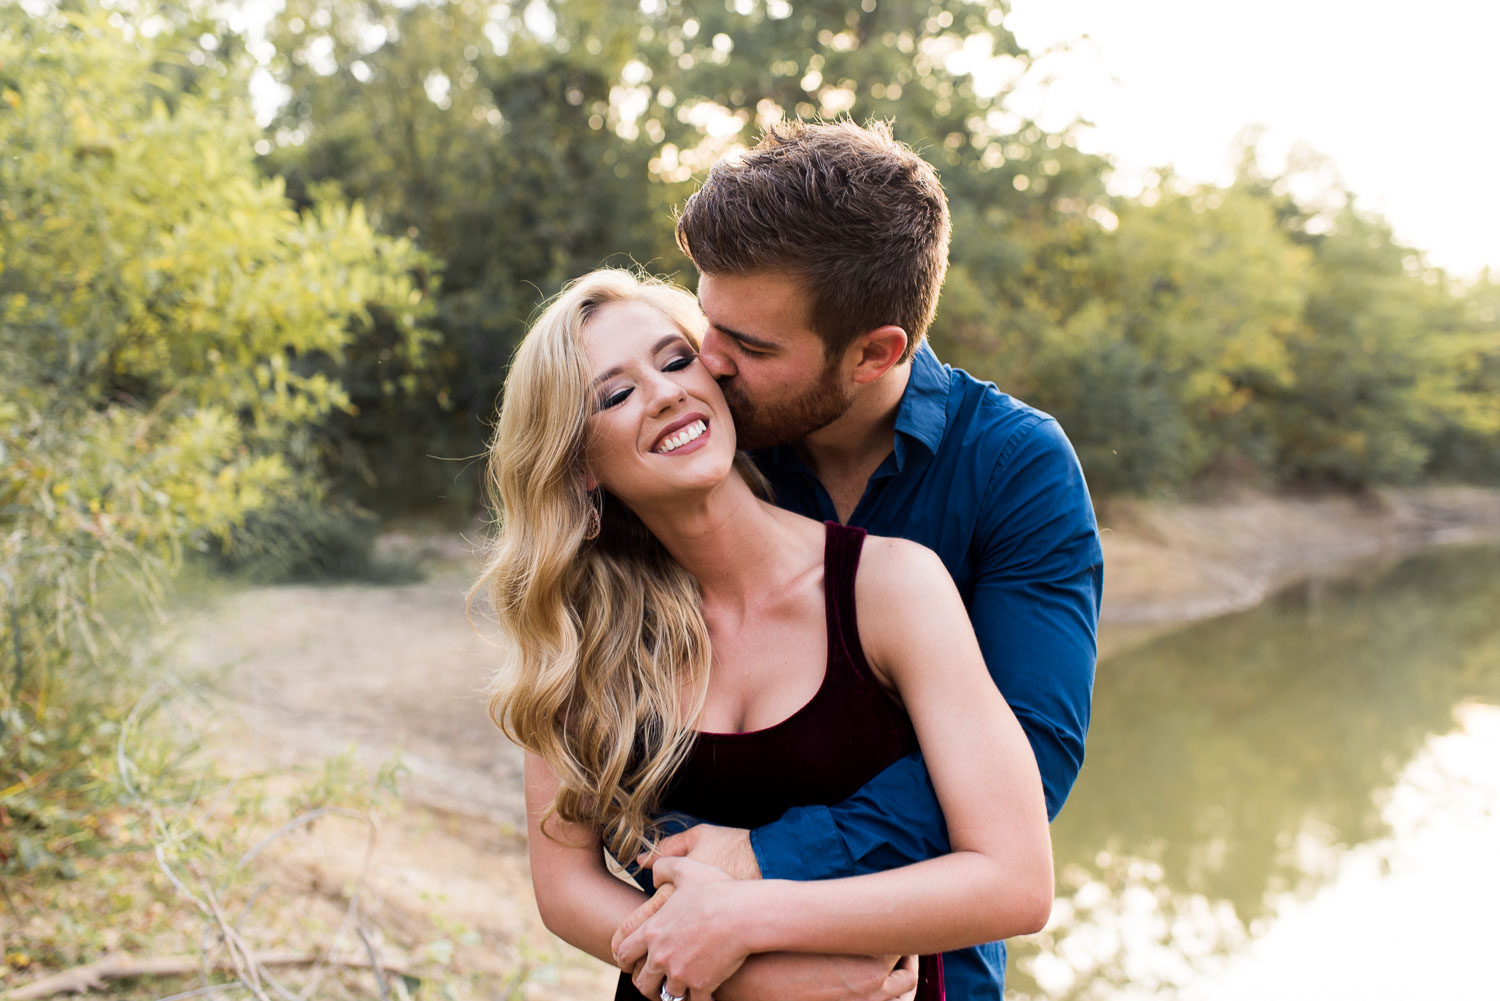 josh - lindsey - engagement - photos - alrington - texas - river - legacy - park-9.jpg